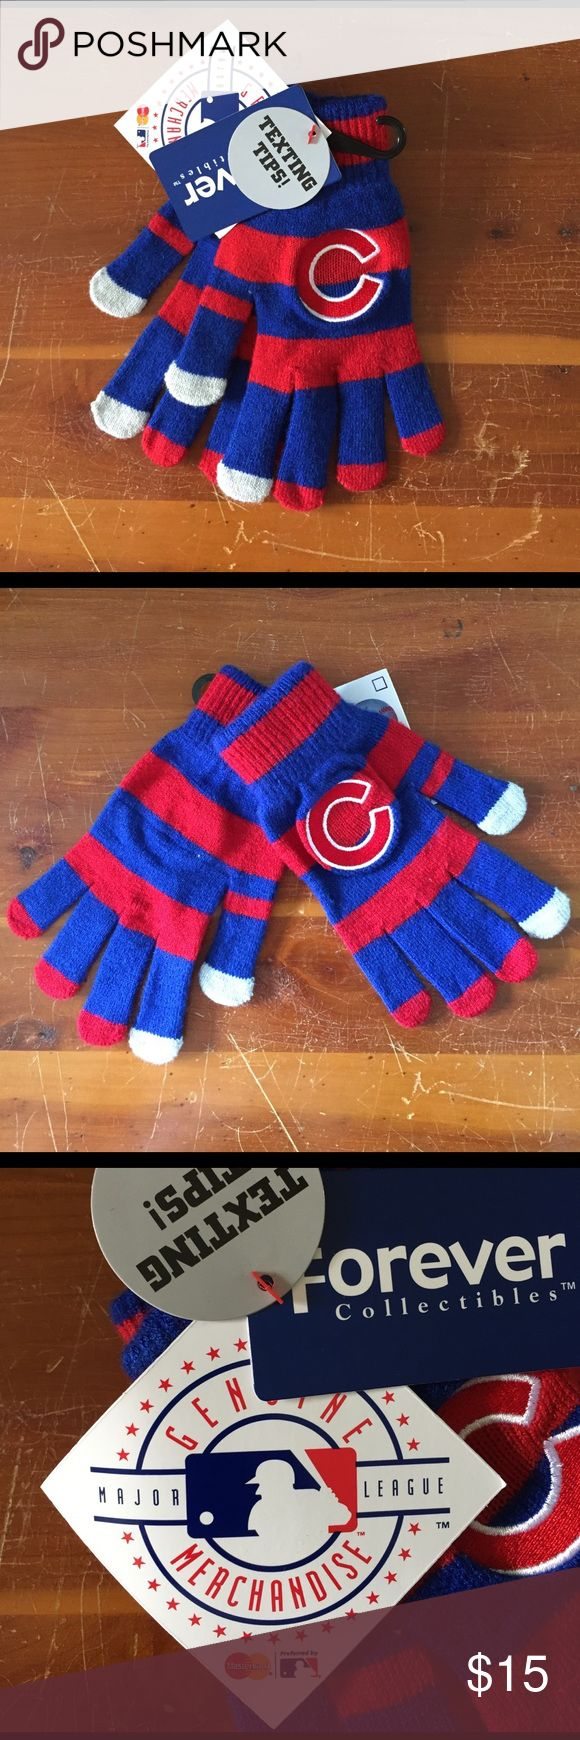 NWT Chicago Cubs gloves with texting fingertips NWT Chicago Cubs gloves with texting tips. Show your Cubbie pride for the 2016 World Series champions with these red and blue striped gloves! Genuine Major League merchandise. Major League Baseball Accessories Gloves & Mittens